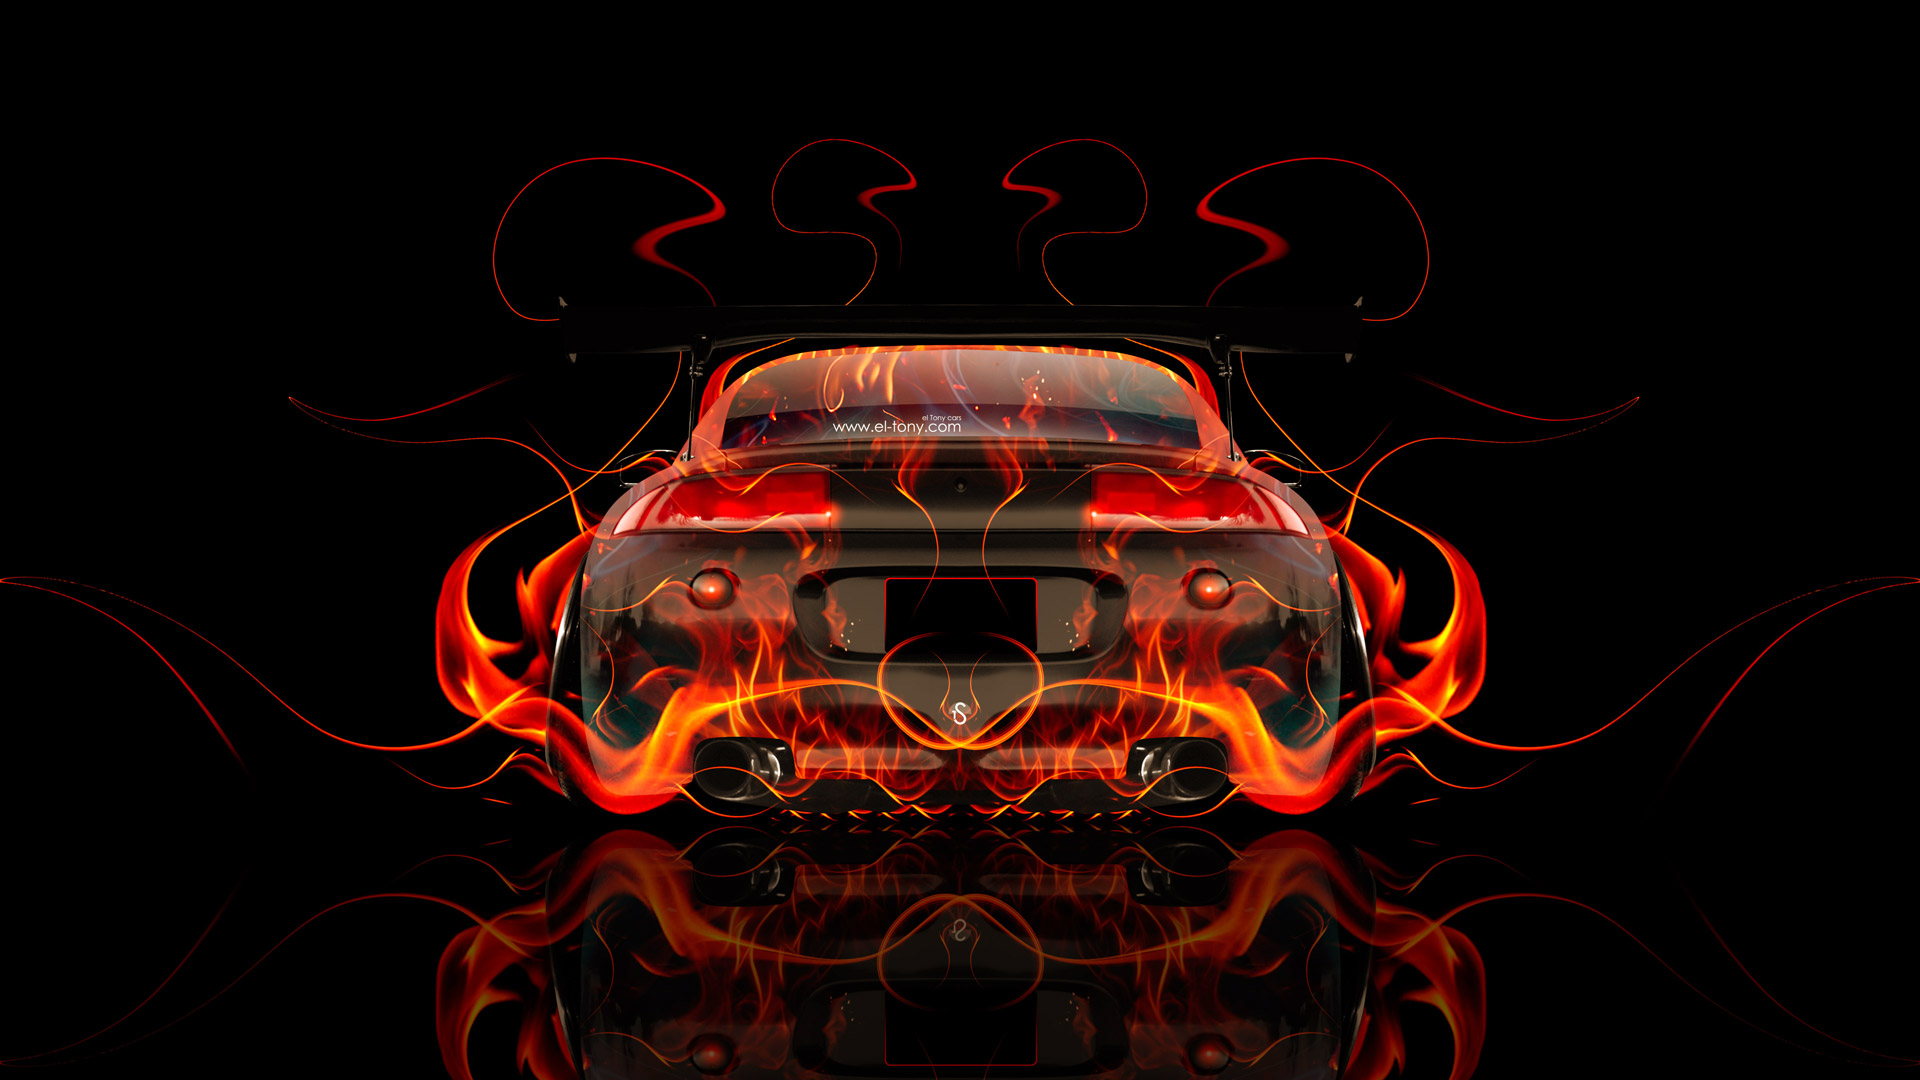 Superieur Mitsubishi Eclipse JDM Tuning Back Fire Car 2014. TAGS Abstract ...